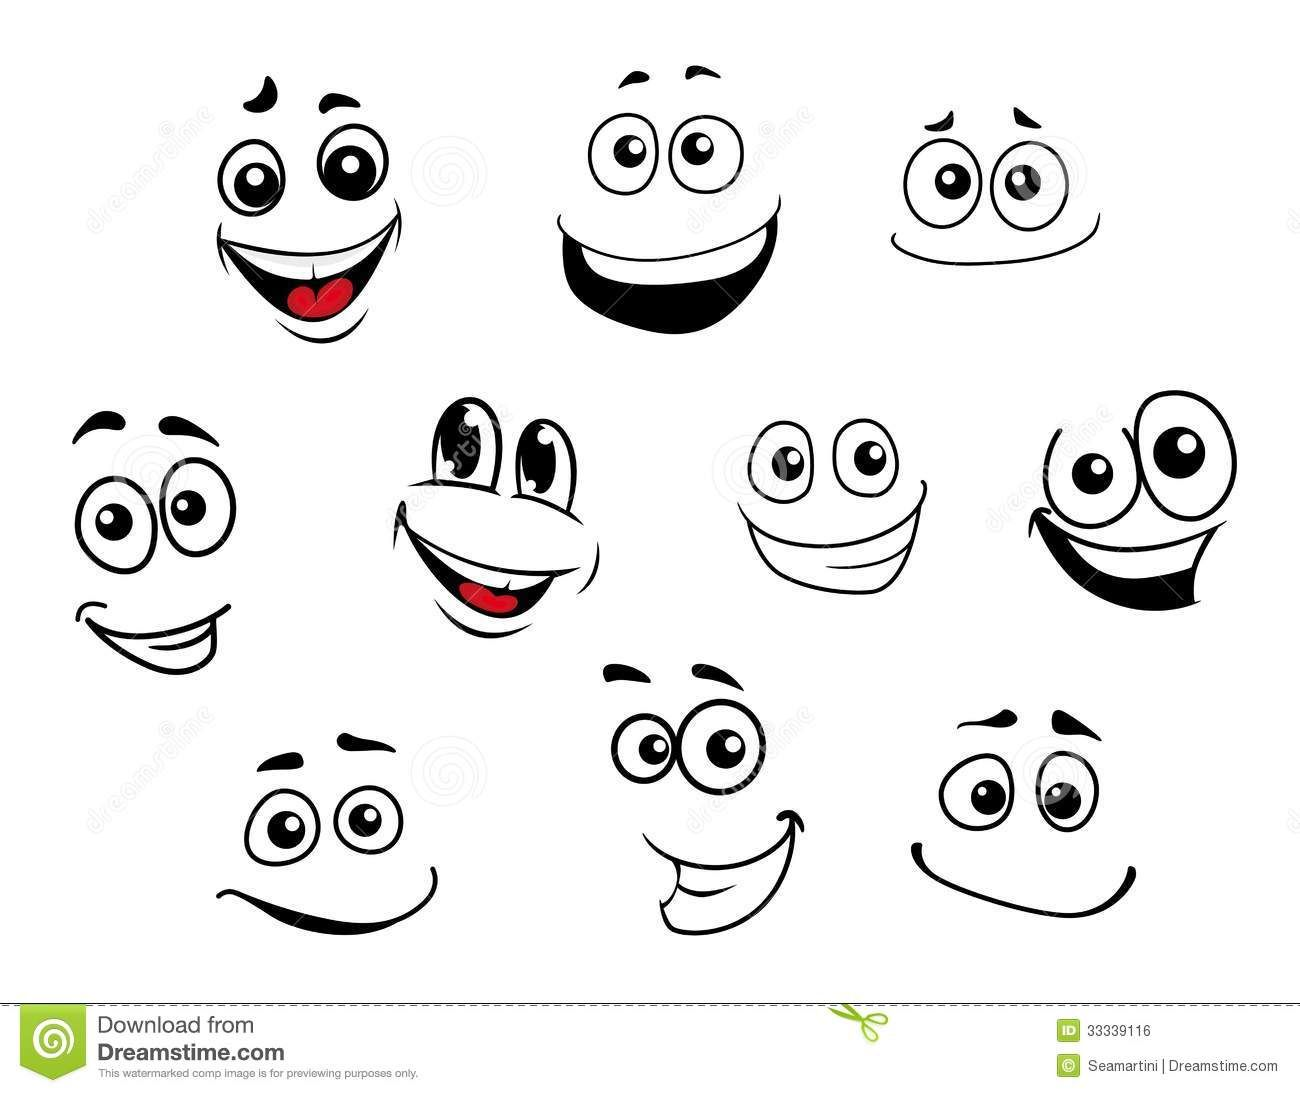 Funny cartoon face clipart clipart library library faces cartoon - Google Search | Emotions | Funny cartoon faces ... clipart library library